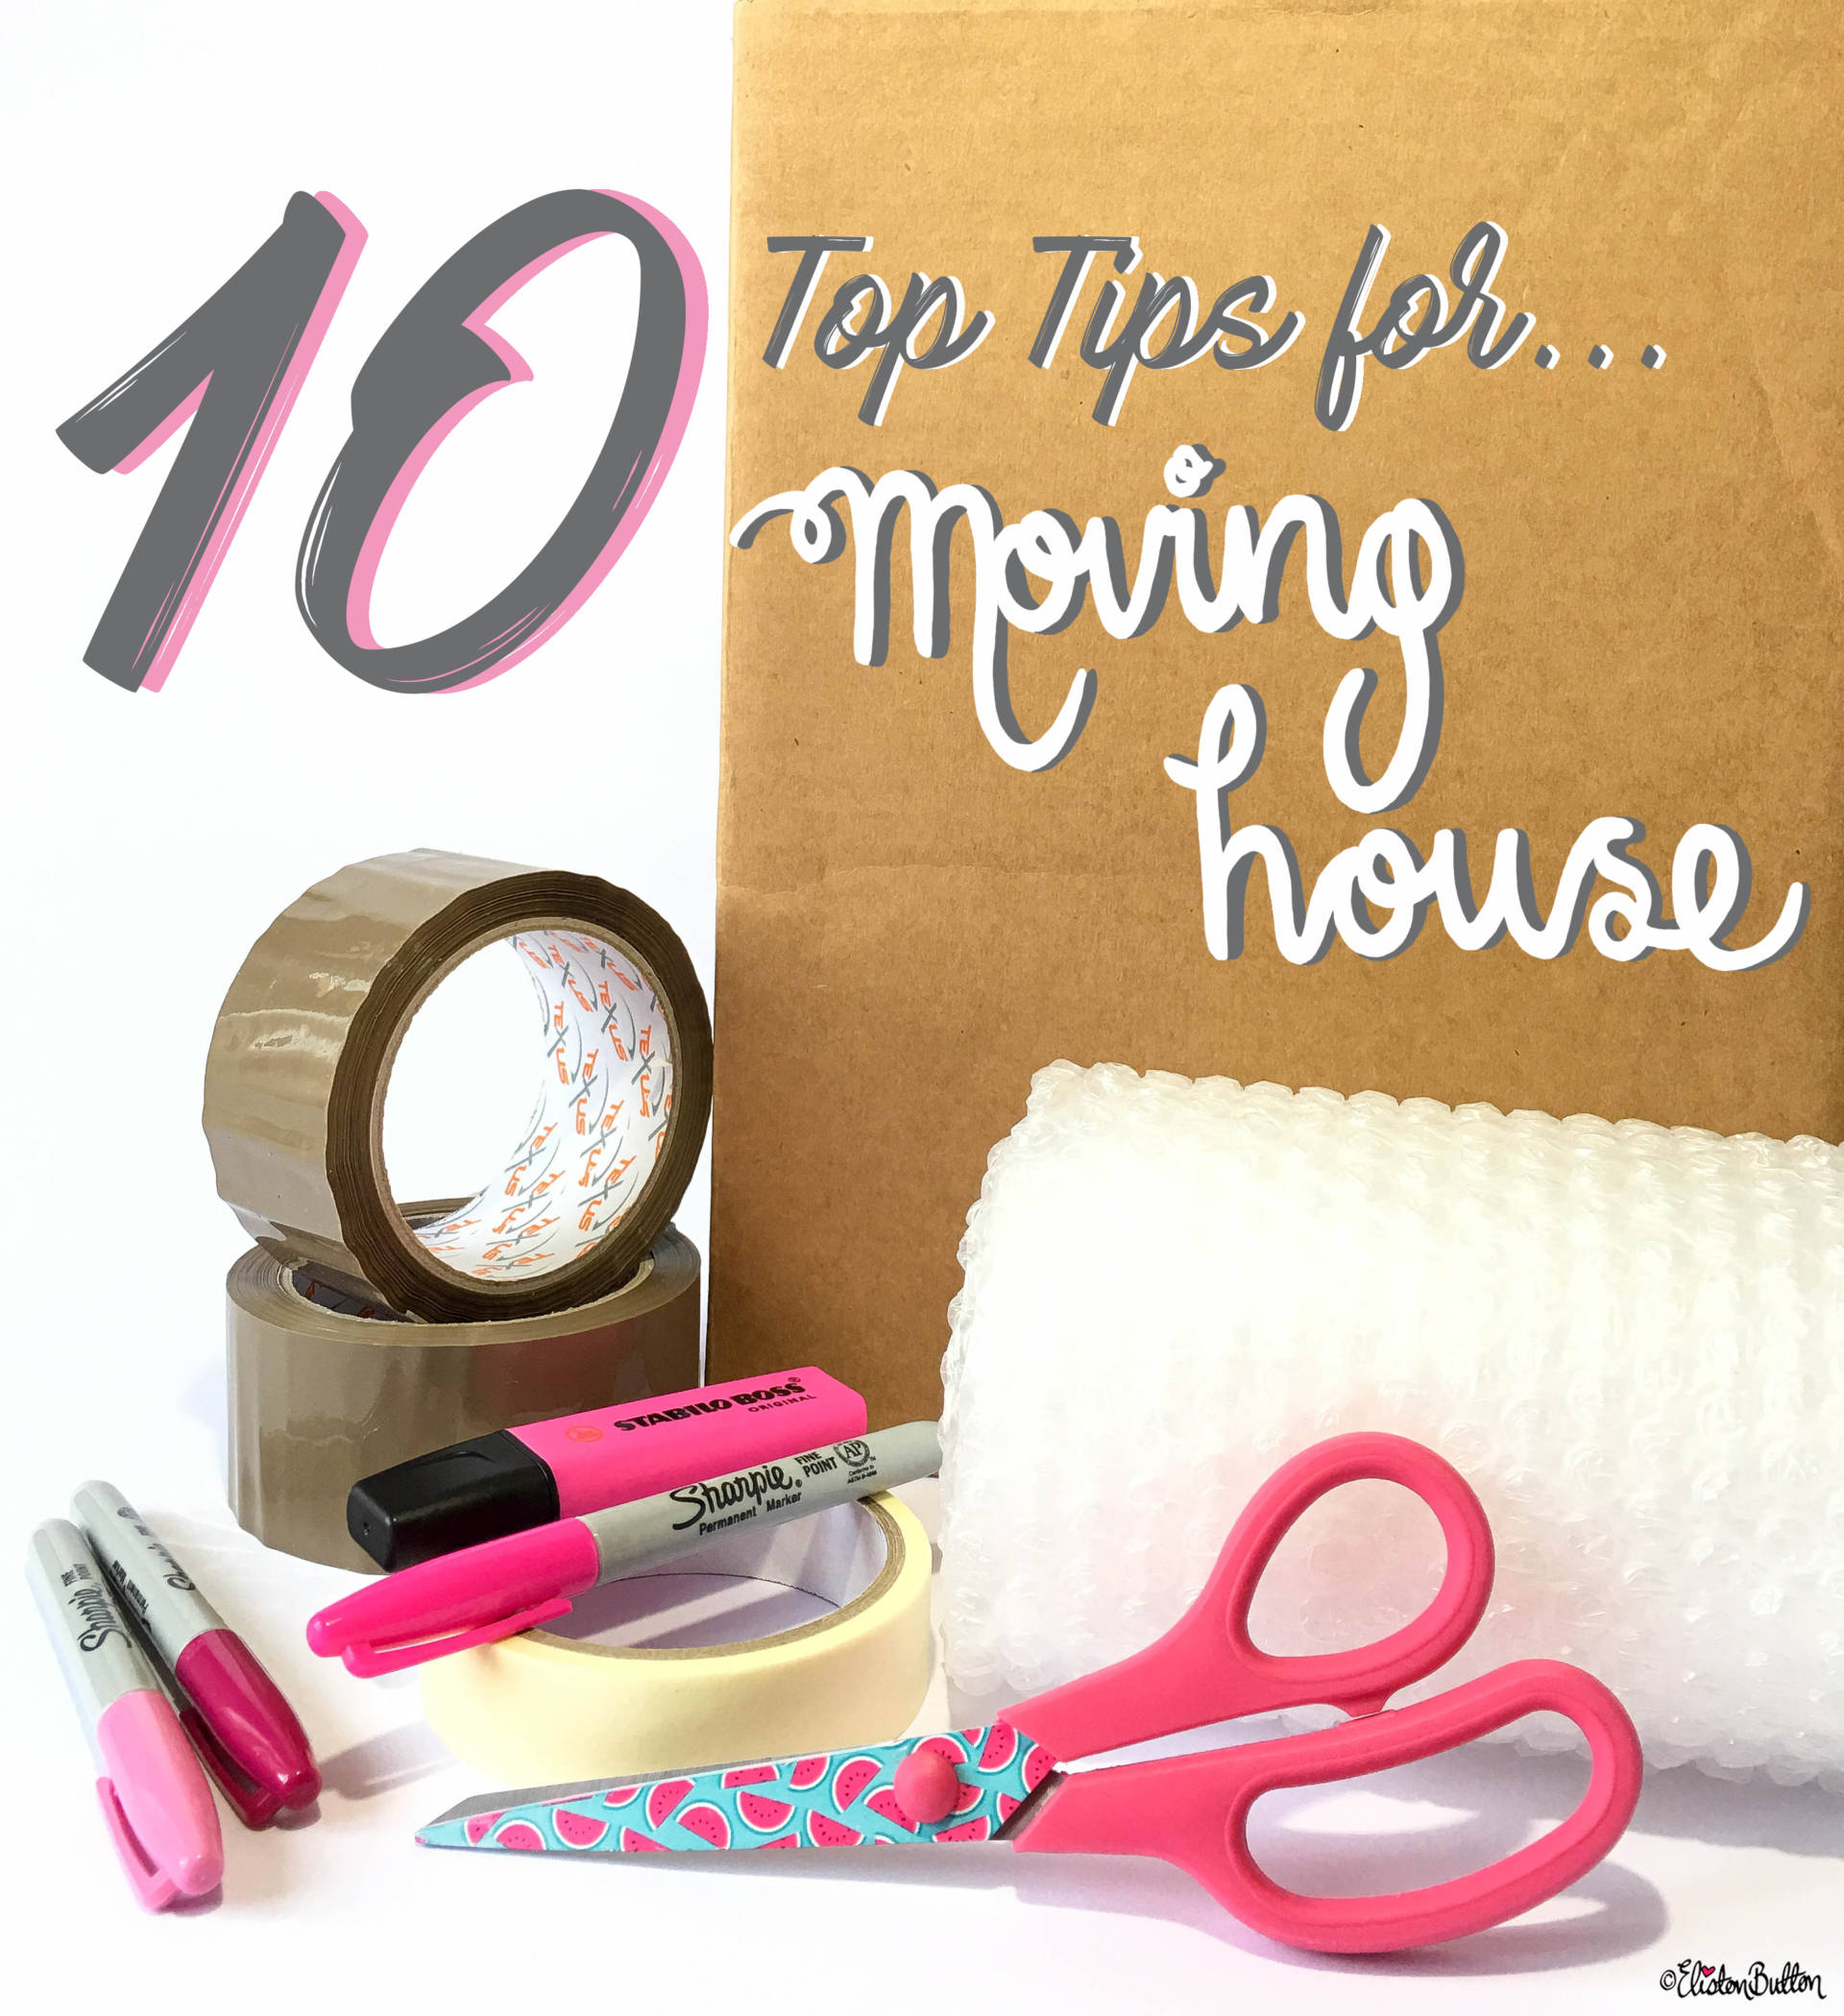 10 Top Tips for...Moving House at www.elistonbutton.com - Eliston Button - That Crafty Kid – Art, Design, Craft & Adventure.